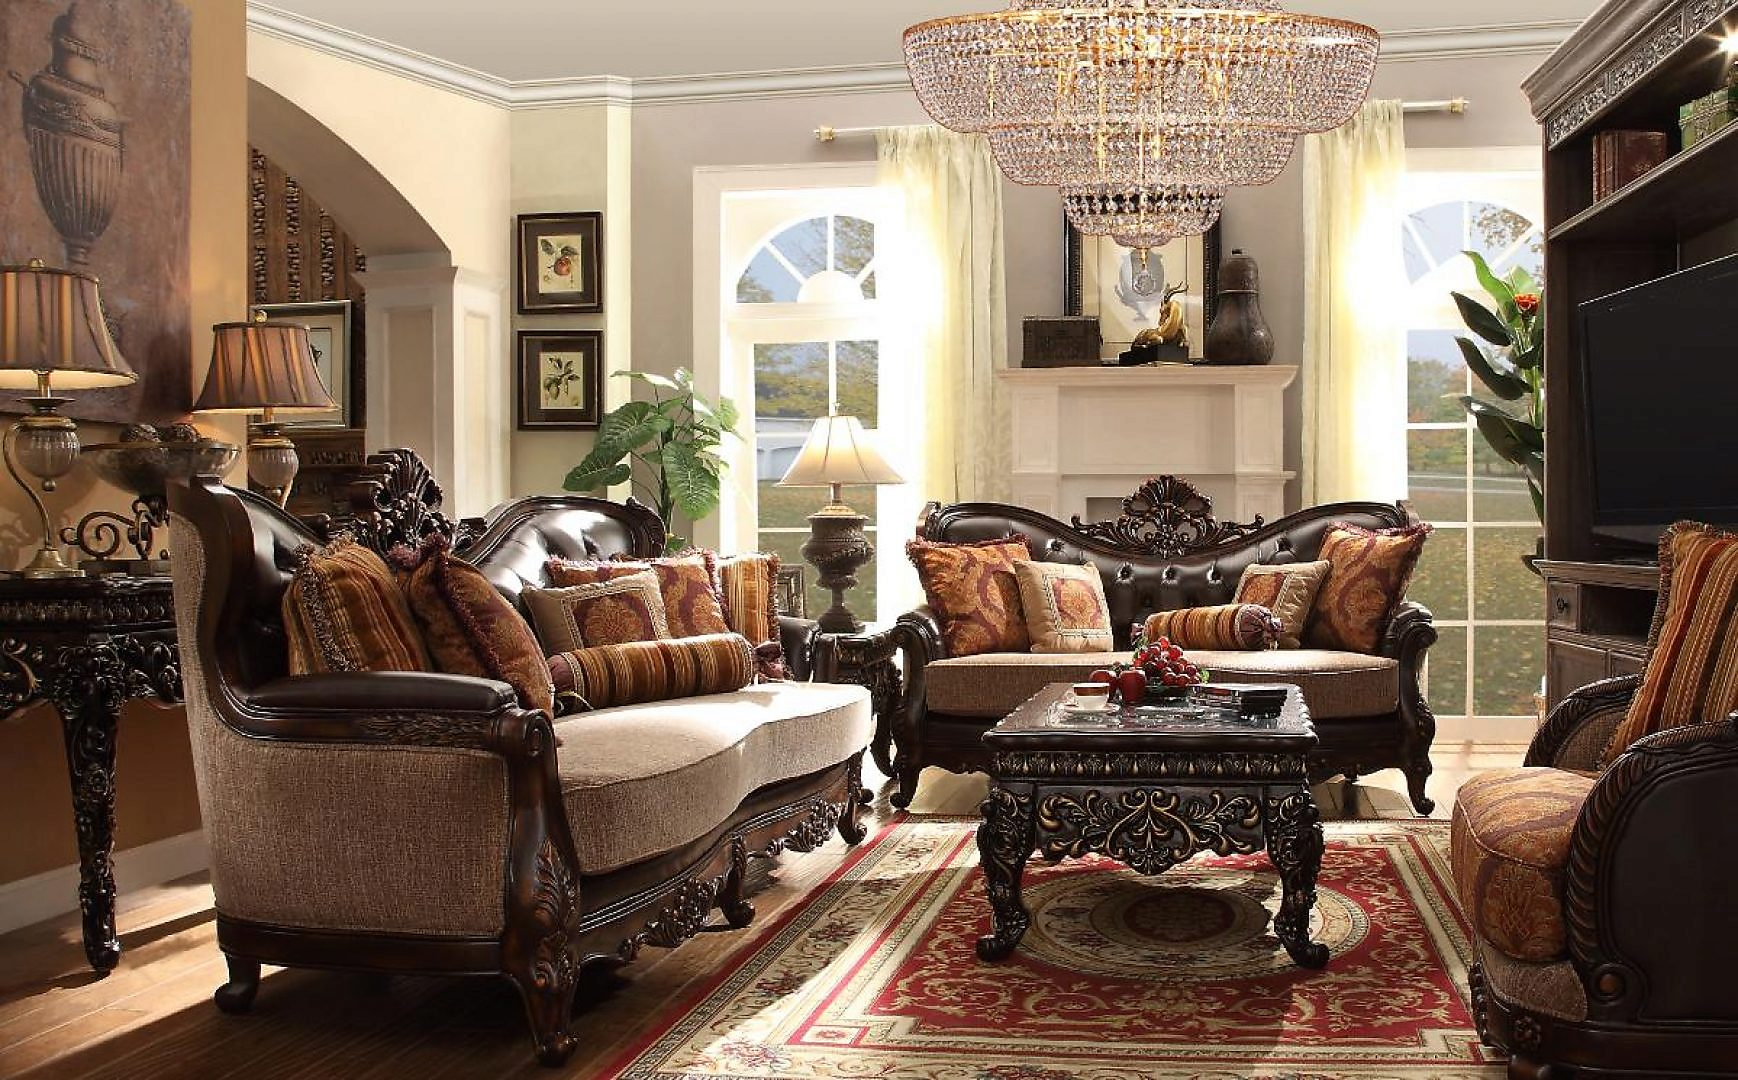 Traditional Carved HD-3630-SLC Sofa Set in Espresso by Homey Design